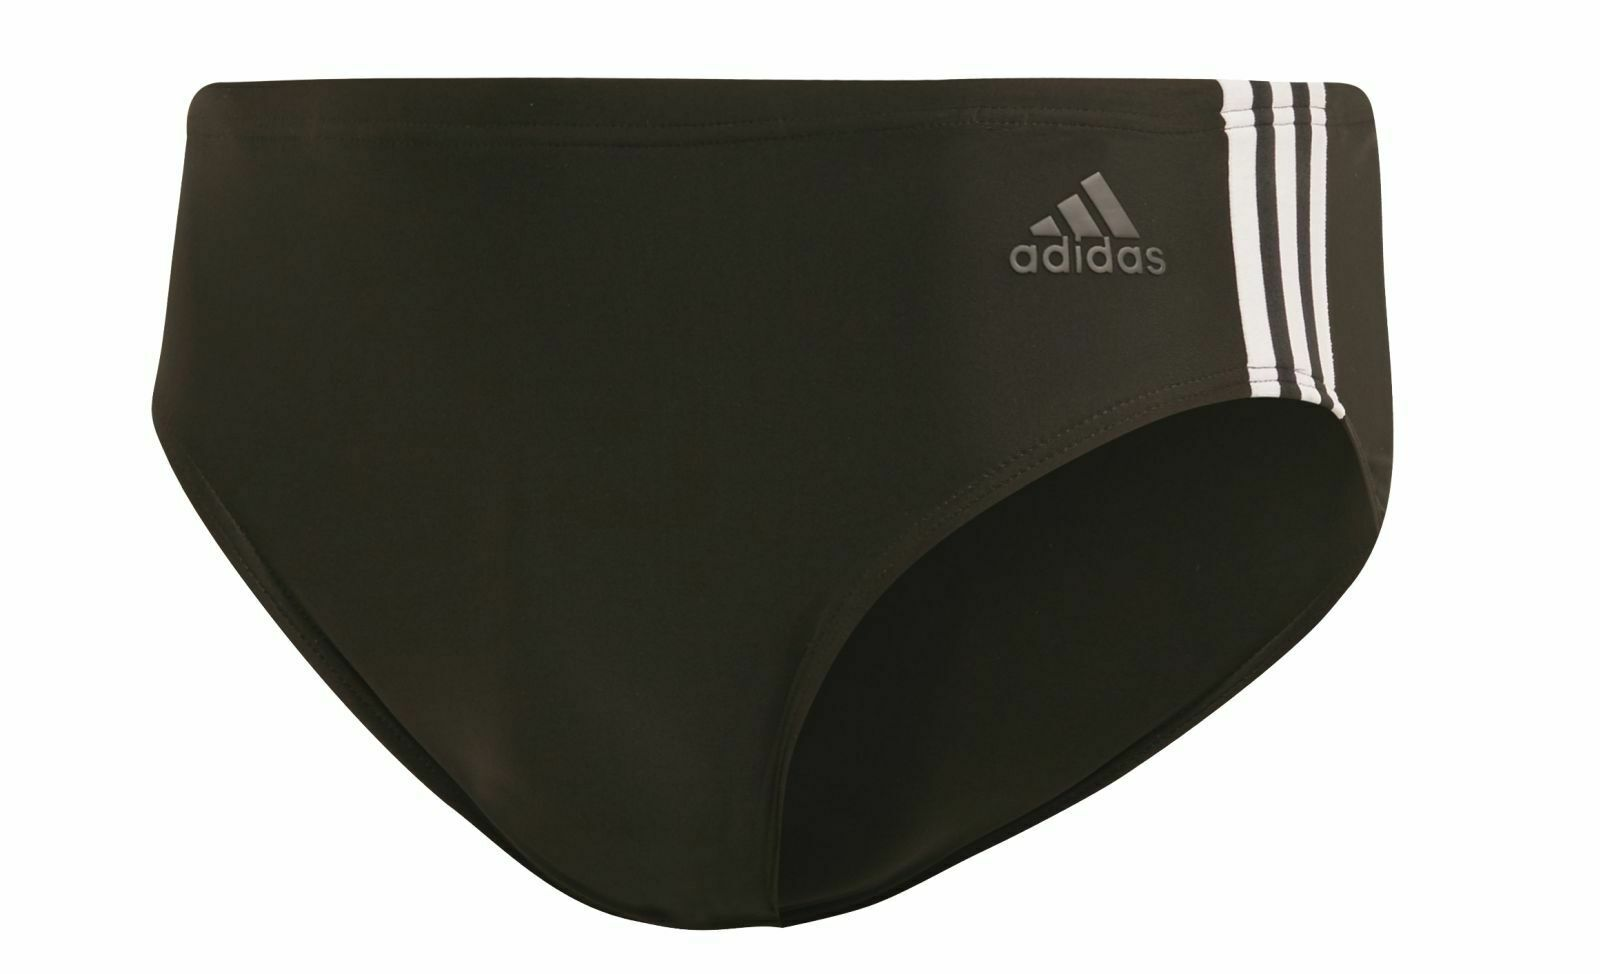 Adidas Performance Badeslip 3-Stripes Schwarz